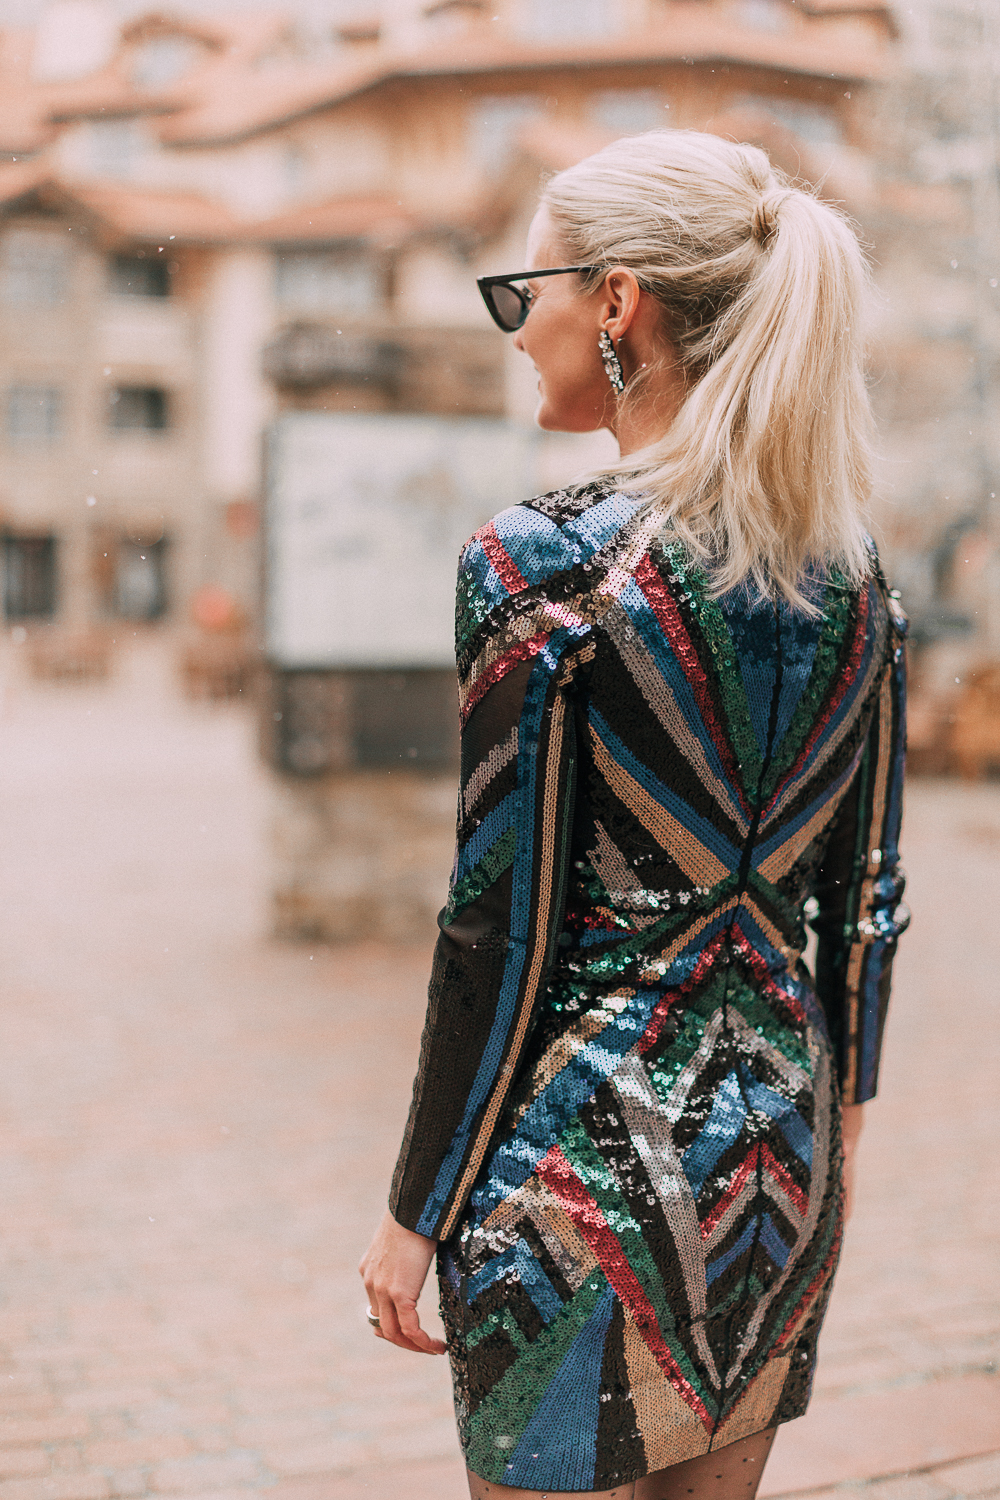 Unexpected holiday party outfits featuring a long-sleeve, colorful sequin mini dress from Express on blonde fashion blogger in the snow in Telluride, Colorado